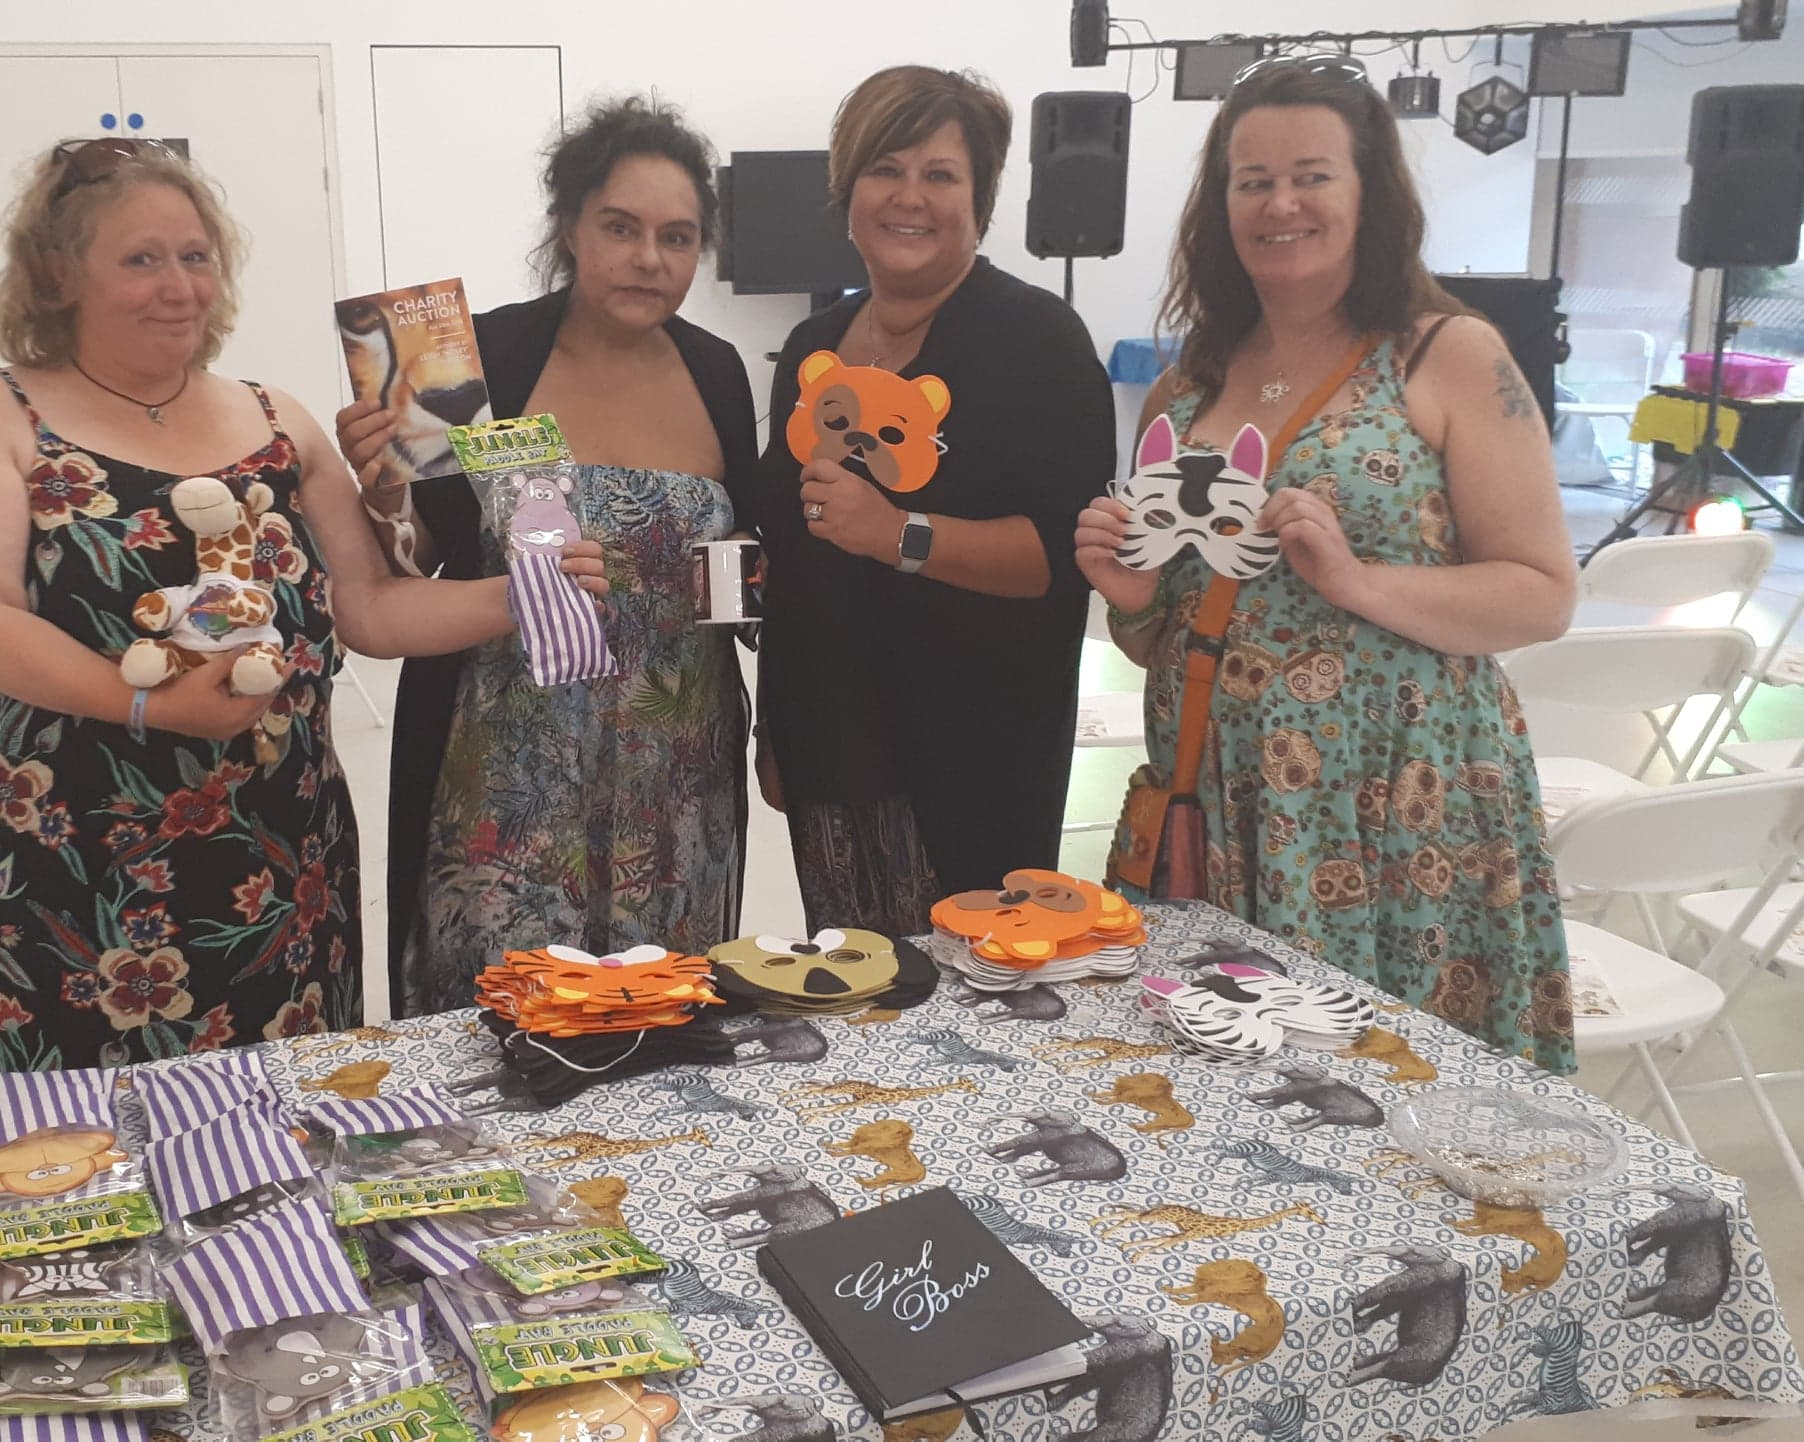 owap ar event fundraiser colchester uk 20 july 2018 with sue abi ellie and kim.jpg